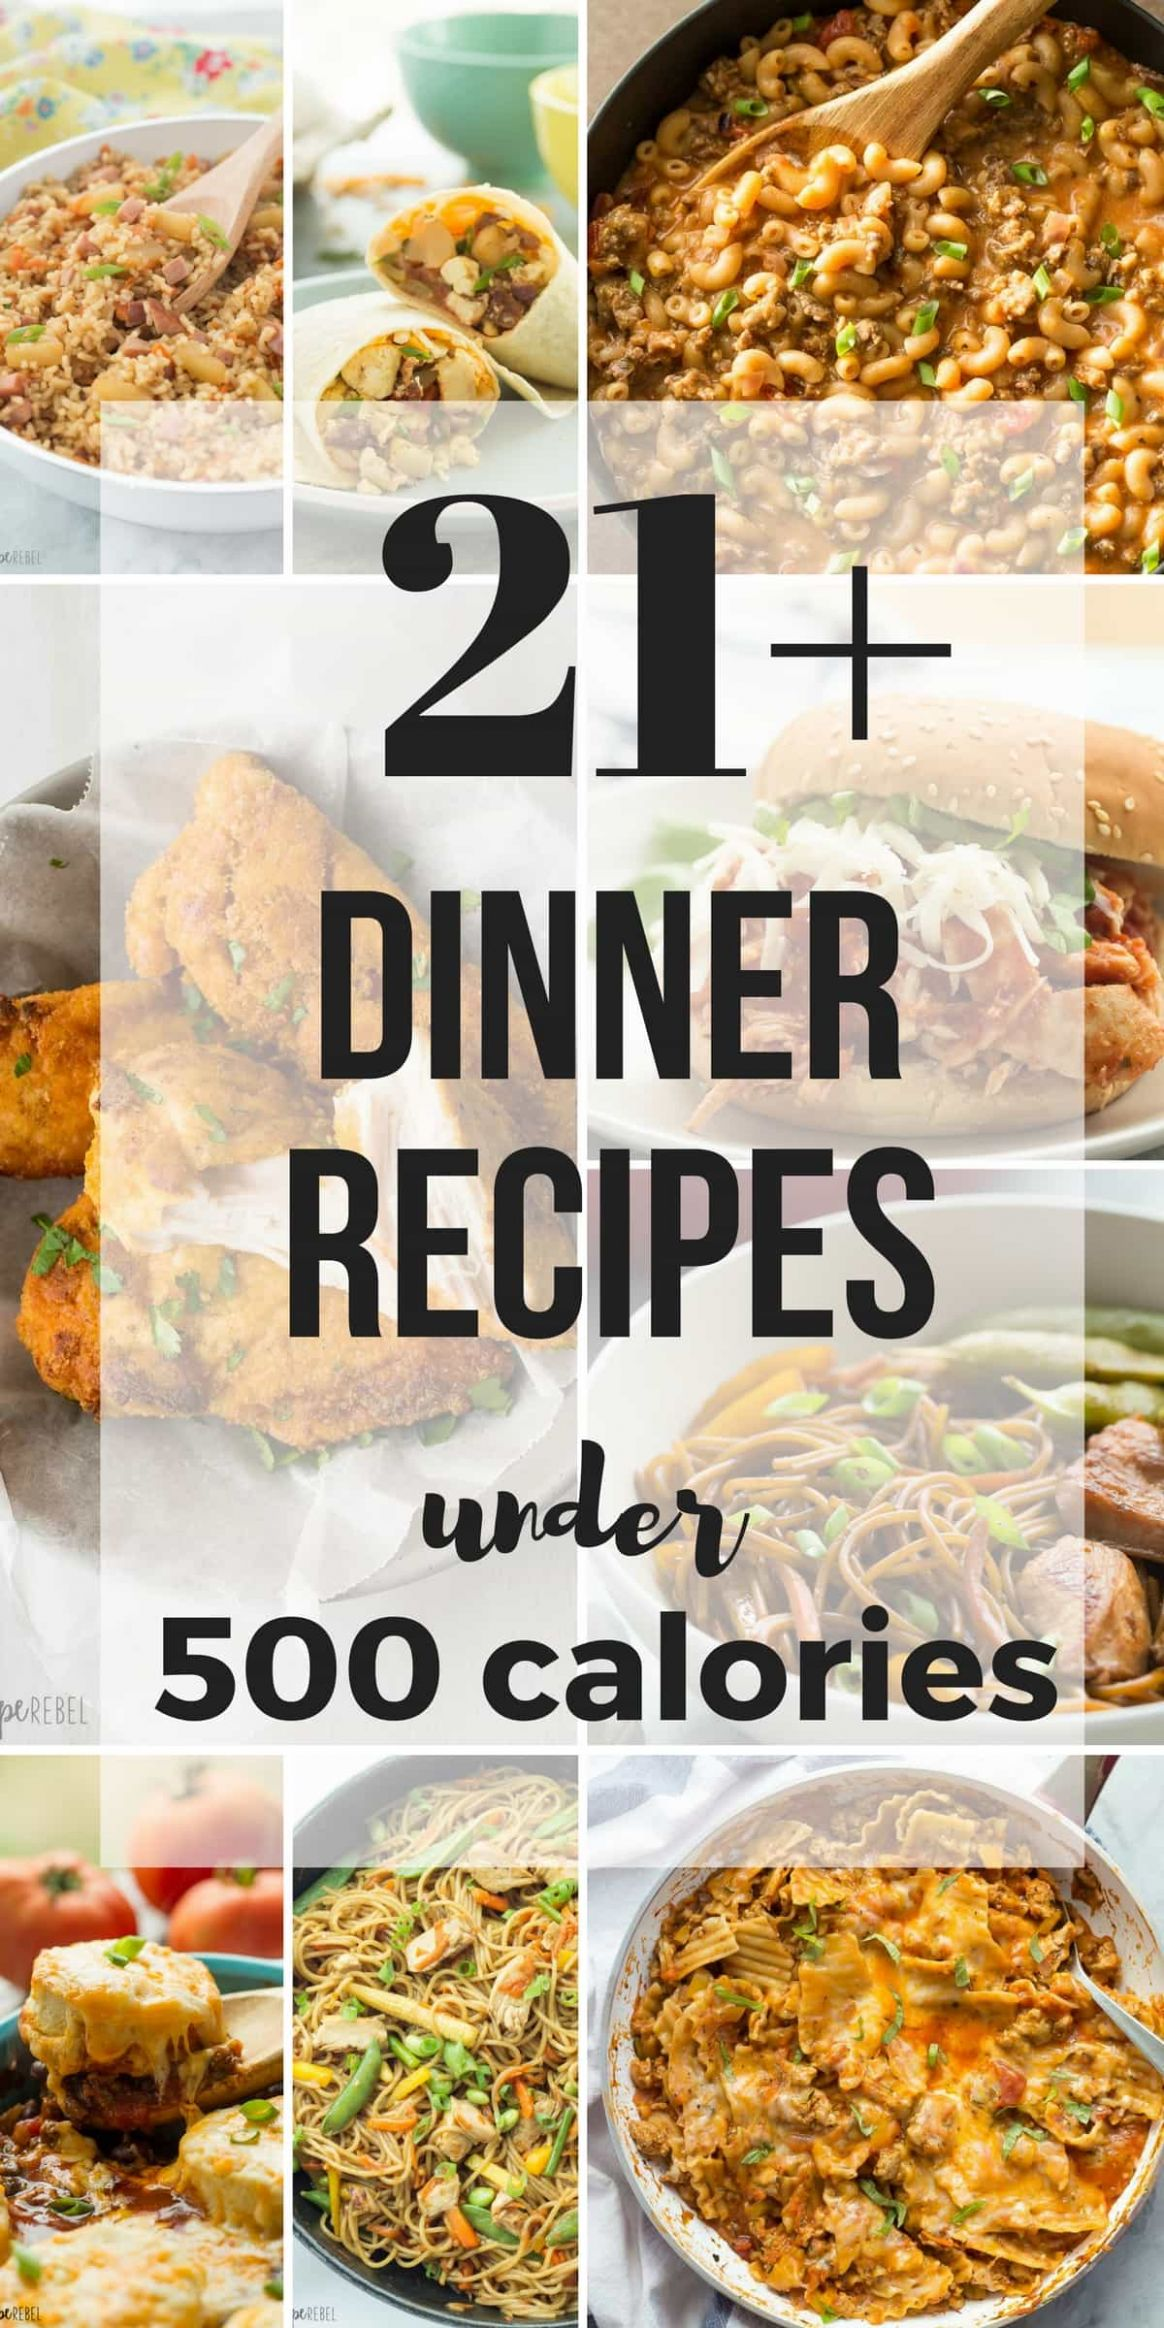 10+ Dinner Recipes Under 10 Calories - Dinner Recipes Under 500 Calories